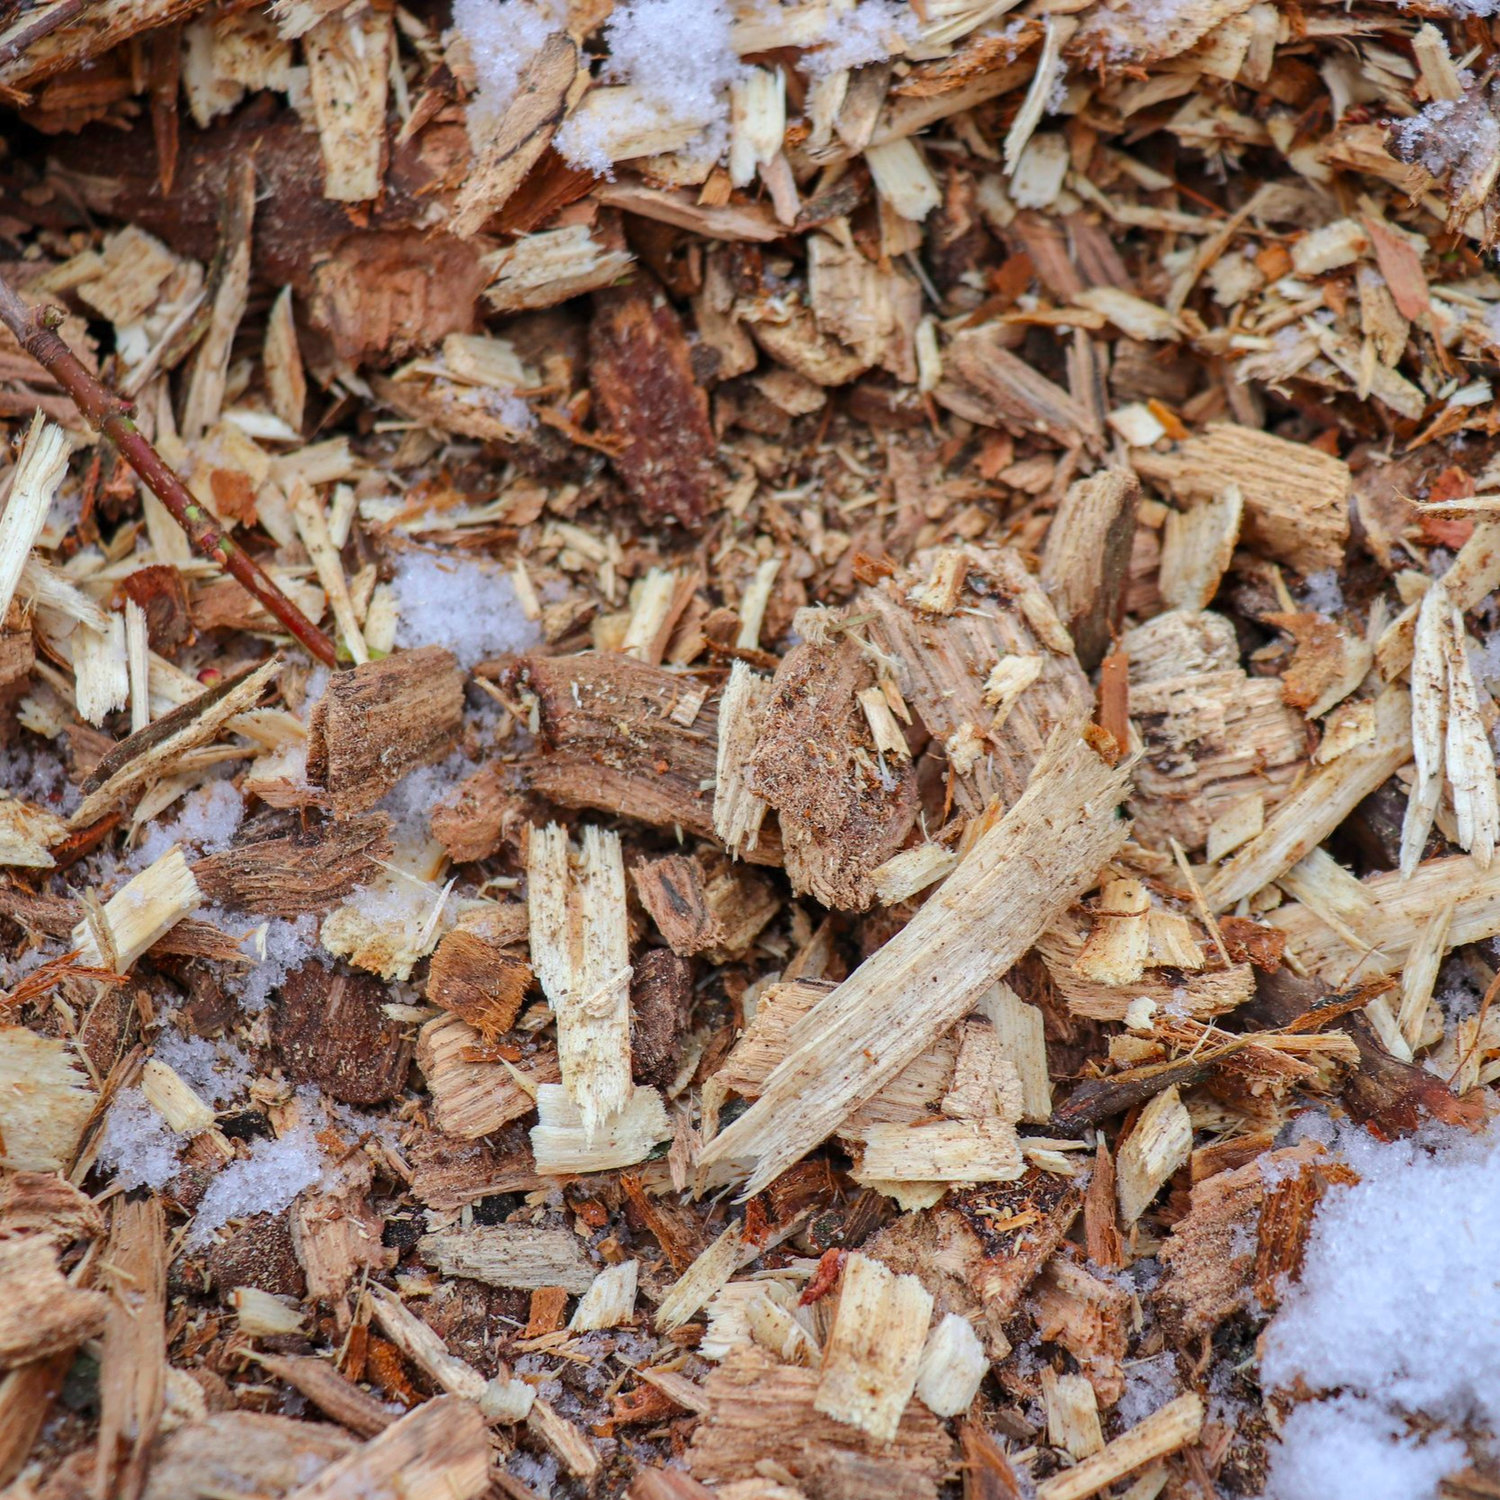 MULCH//Are Wood Chips Harmful to Gardens?